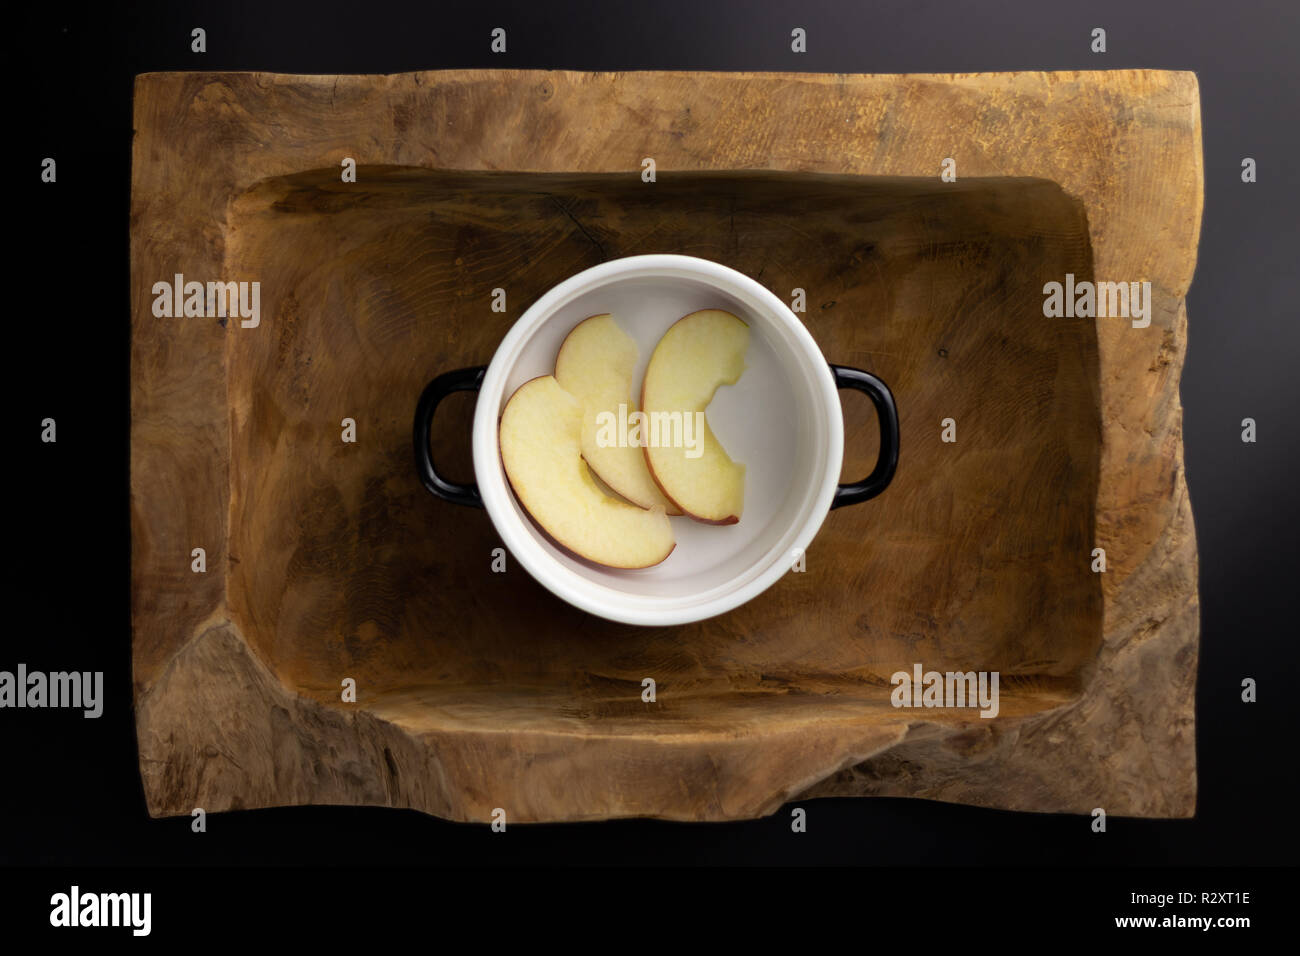 Breakfast on a wooden rectangular bowl with a black and white pot. - Stock Image